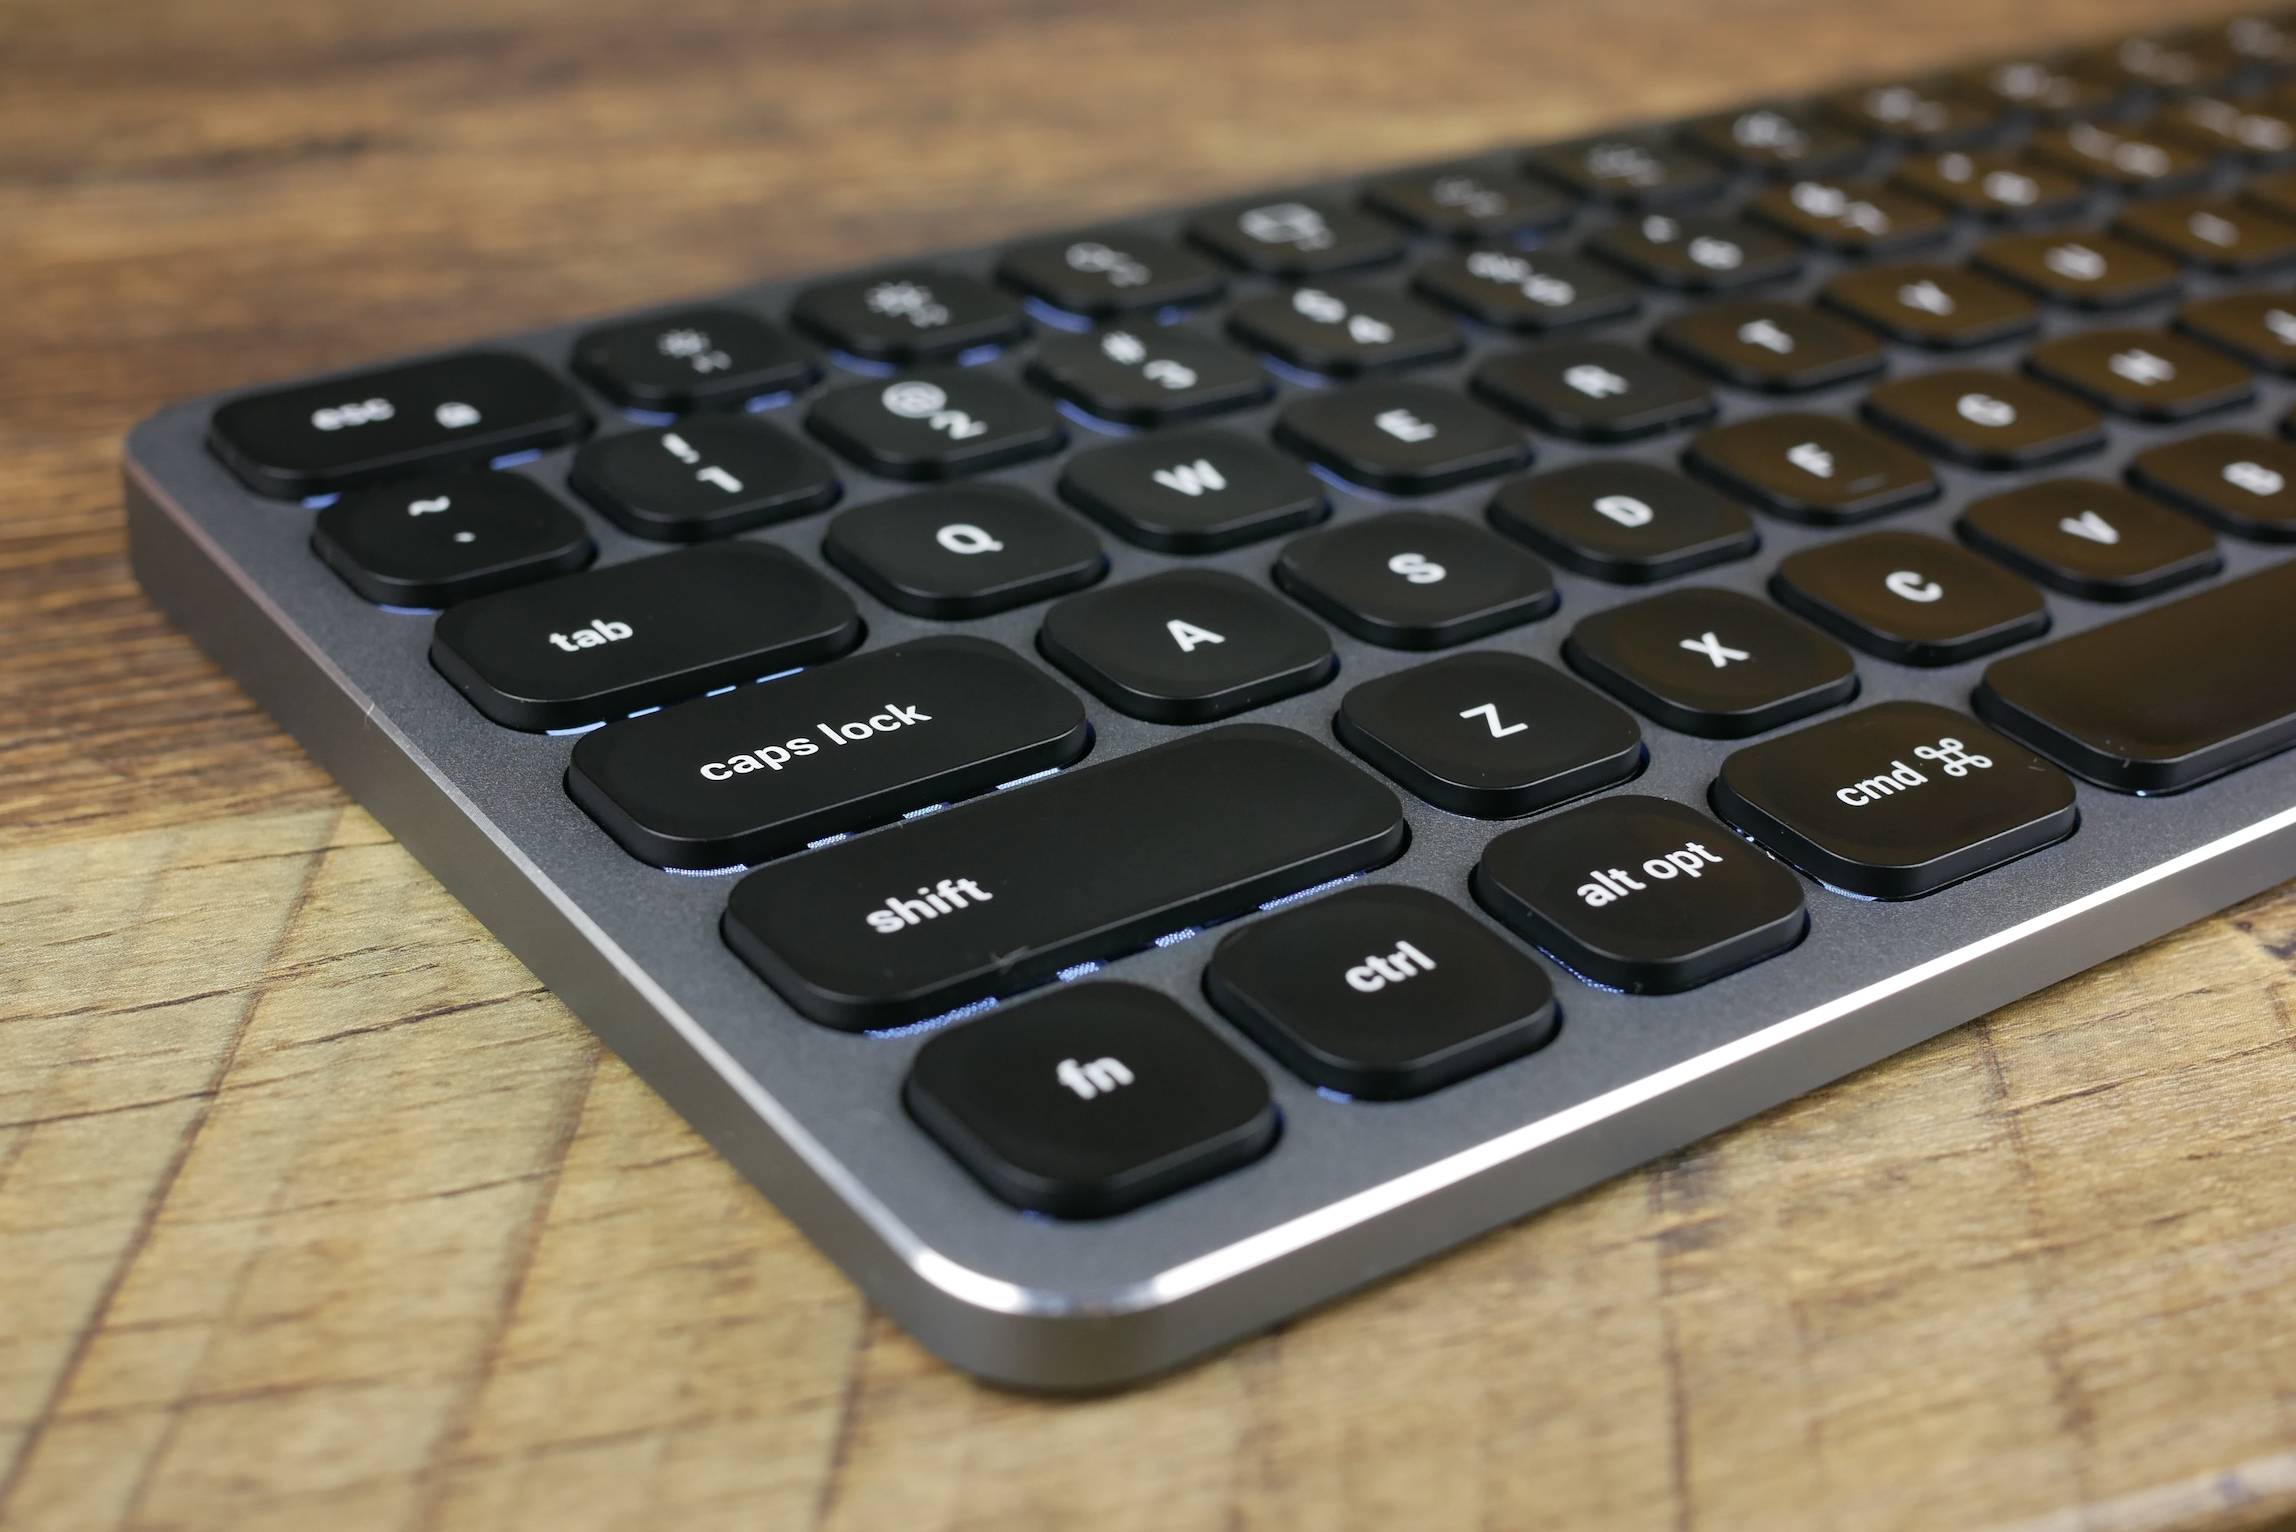 Satechi's Backlit Wireless Keyboard is little more than $50 at $59.99, but it's a worthwhile stretch with this discount.